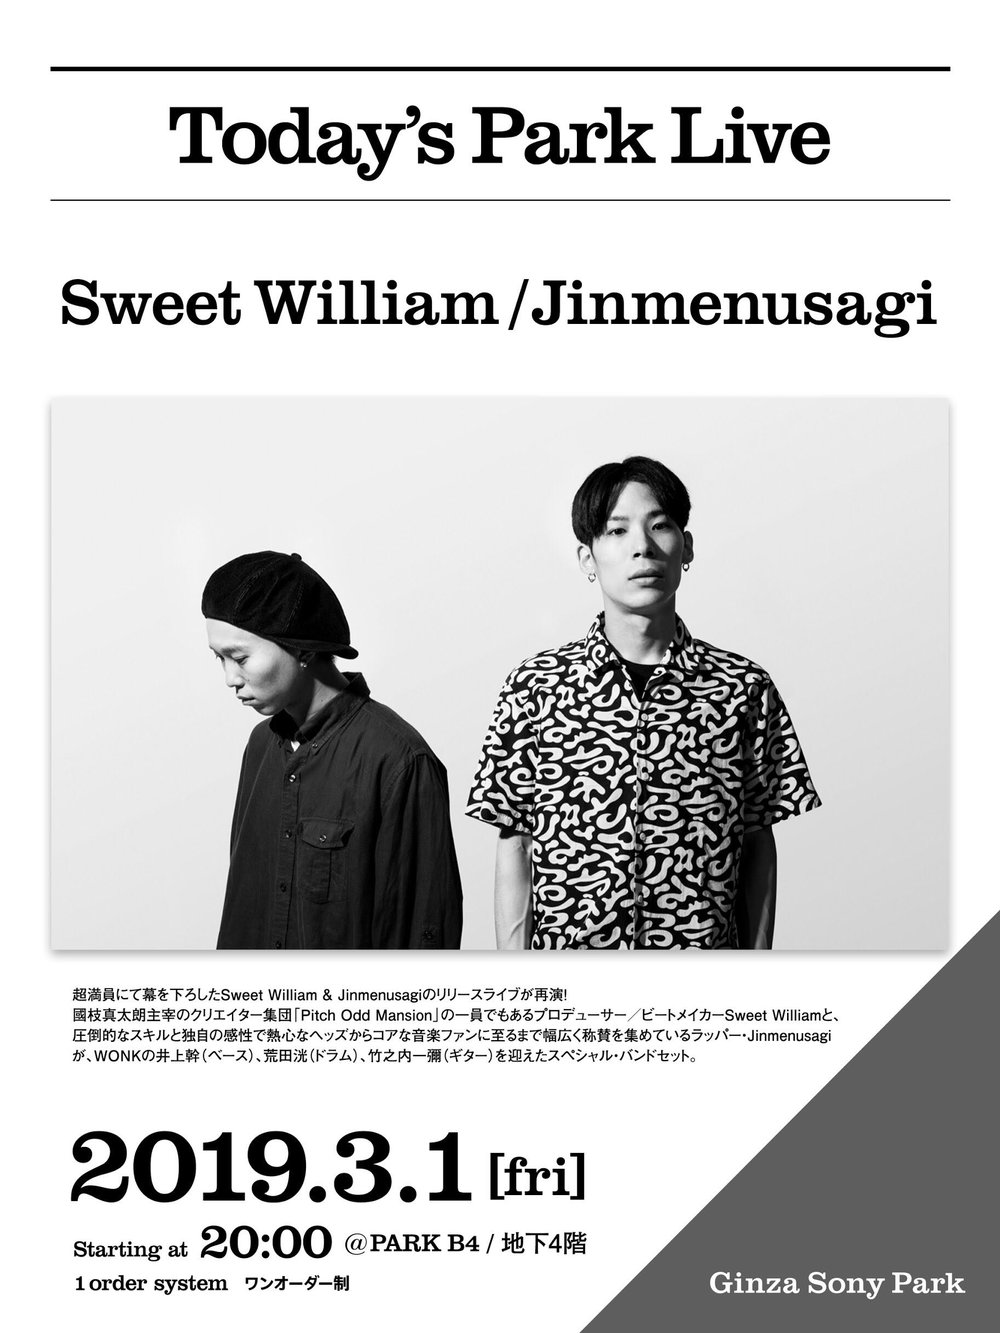 SweetWilliam_Jinmenusagi_3.1_flyer.jpg